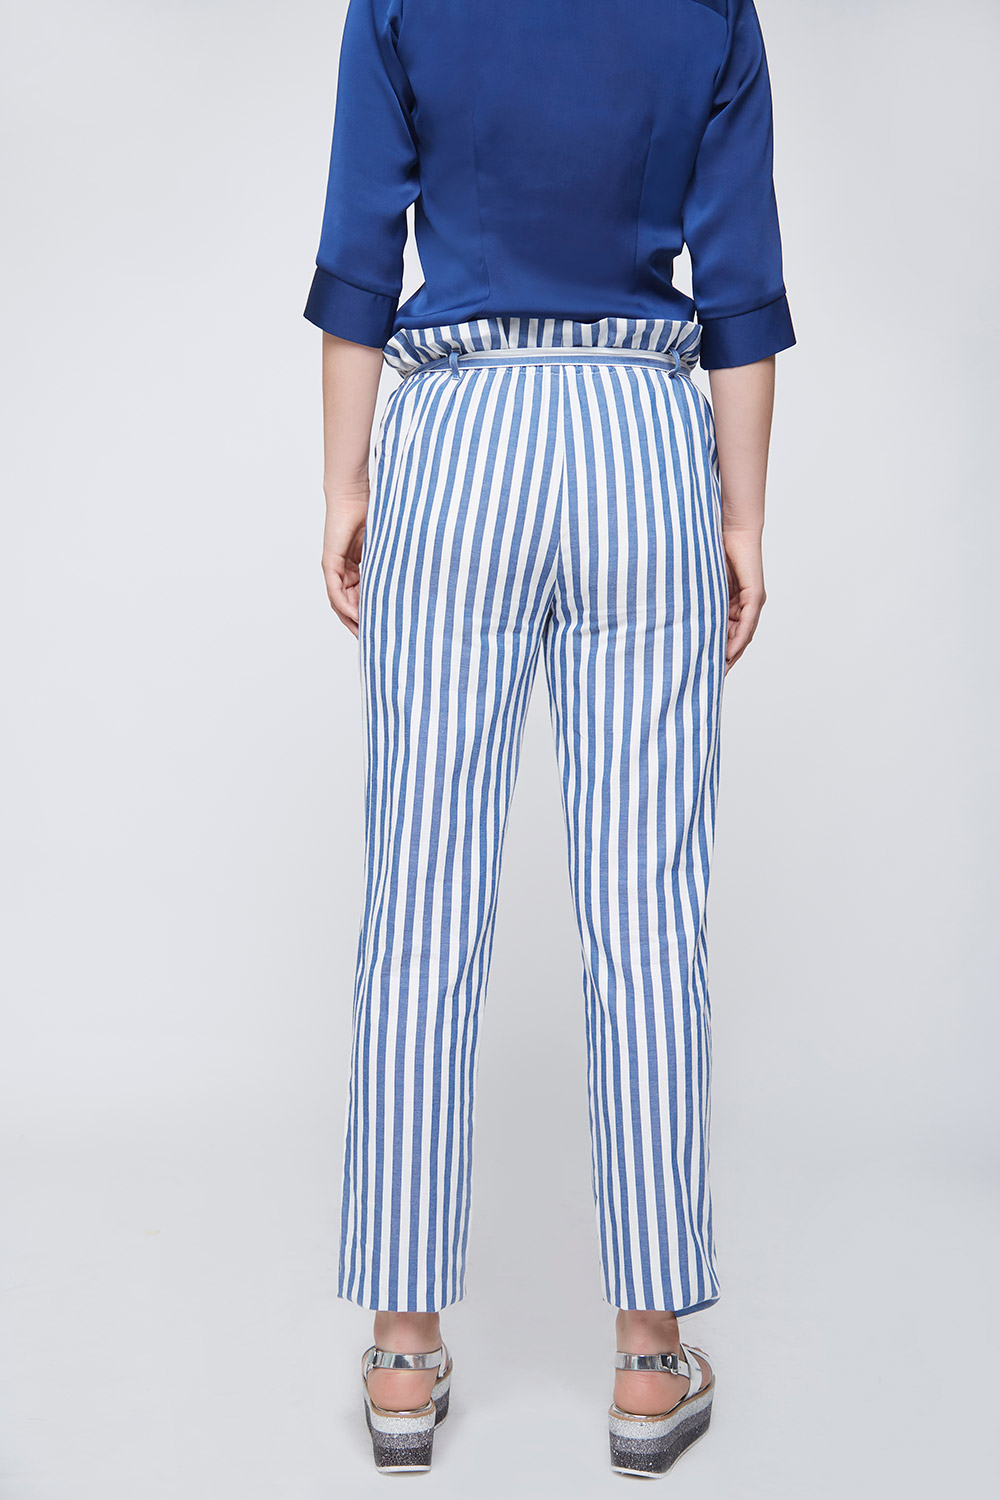 Ruffle Waist Striped Trouser -1